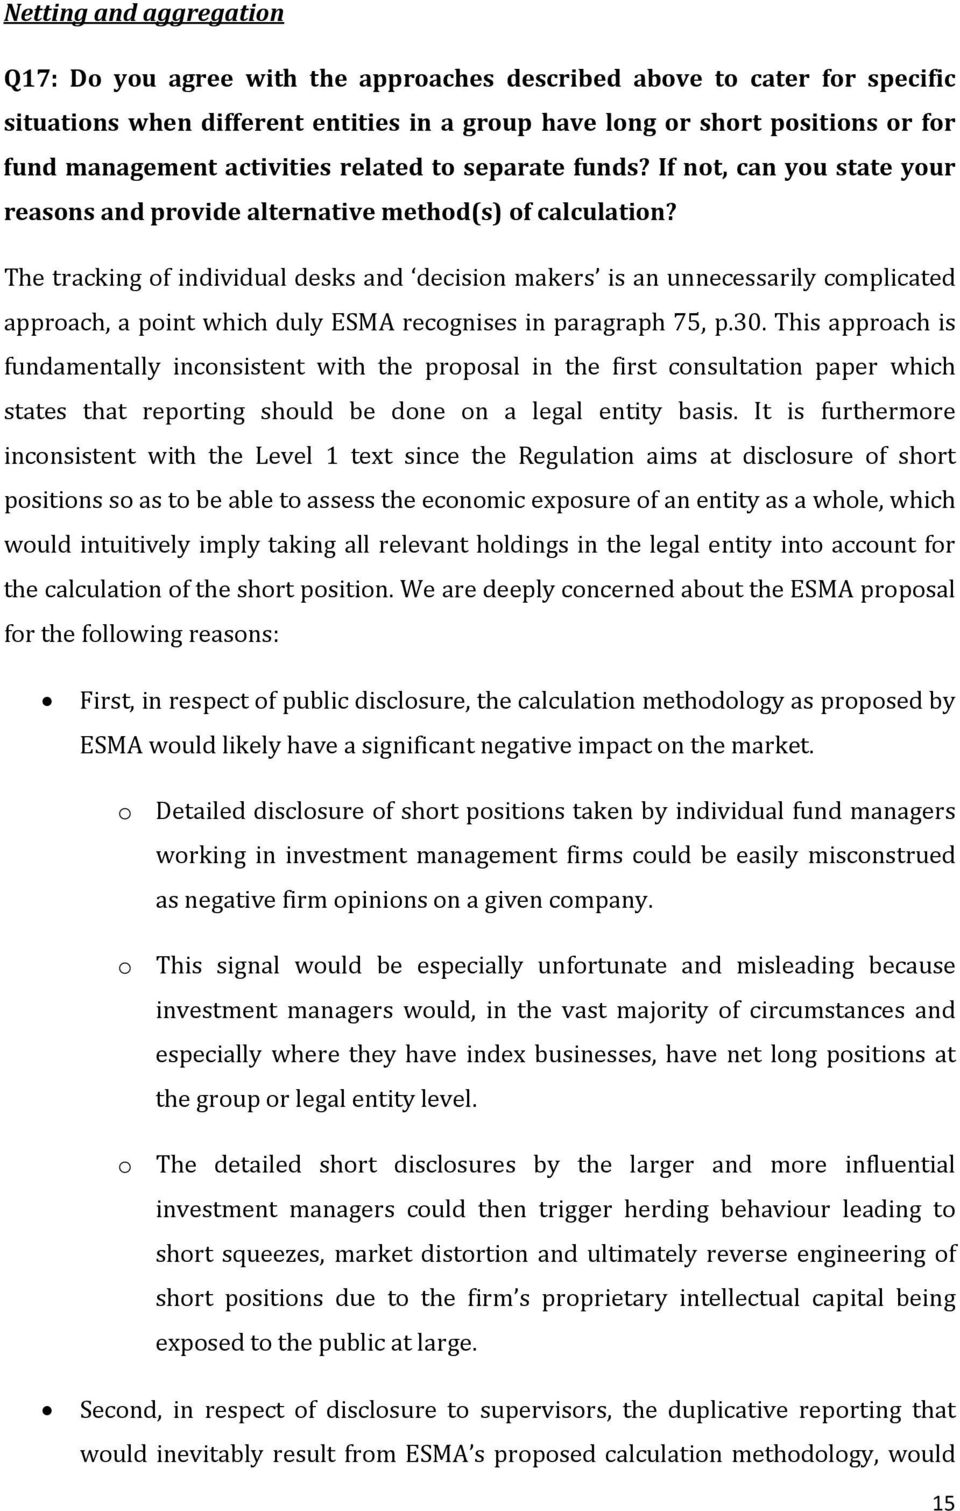 The tracking of individual desks and decision makers is an unnecessarily complicated approach, a point which duly ESMA recognises in paragraph 75, p.30.